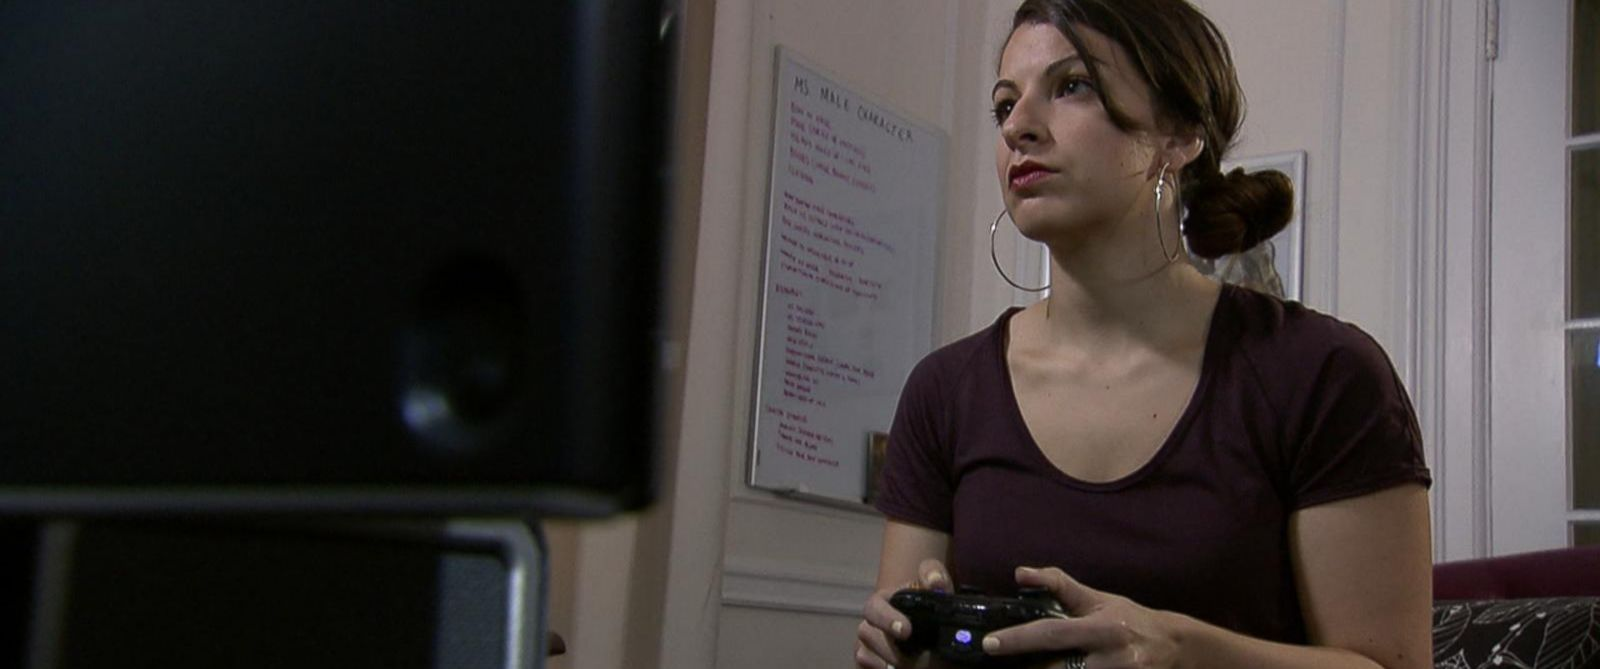 Media critic Anita Sarkeesian has experienced horrible threats after she criticized how women are portrayed in video games.